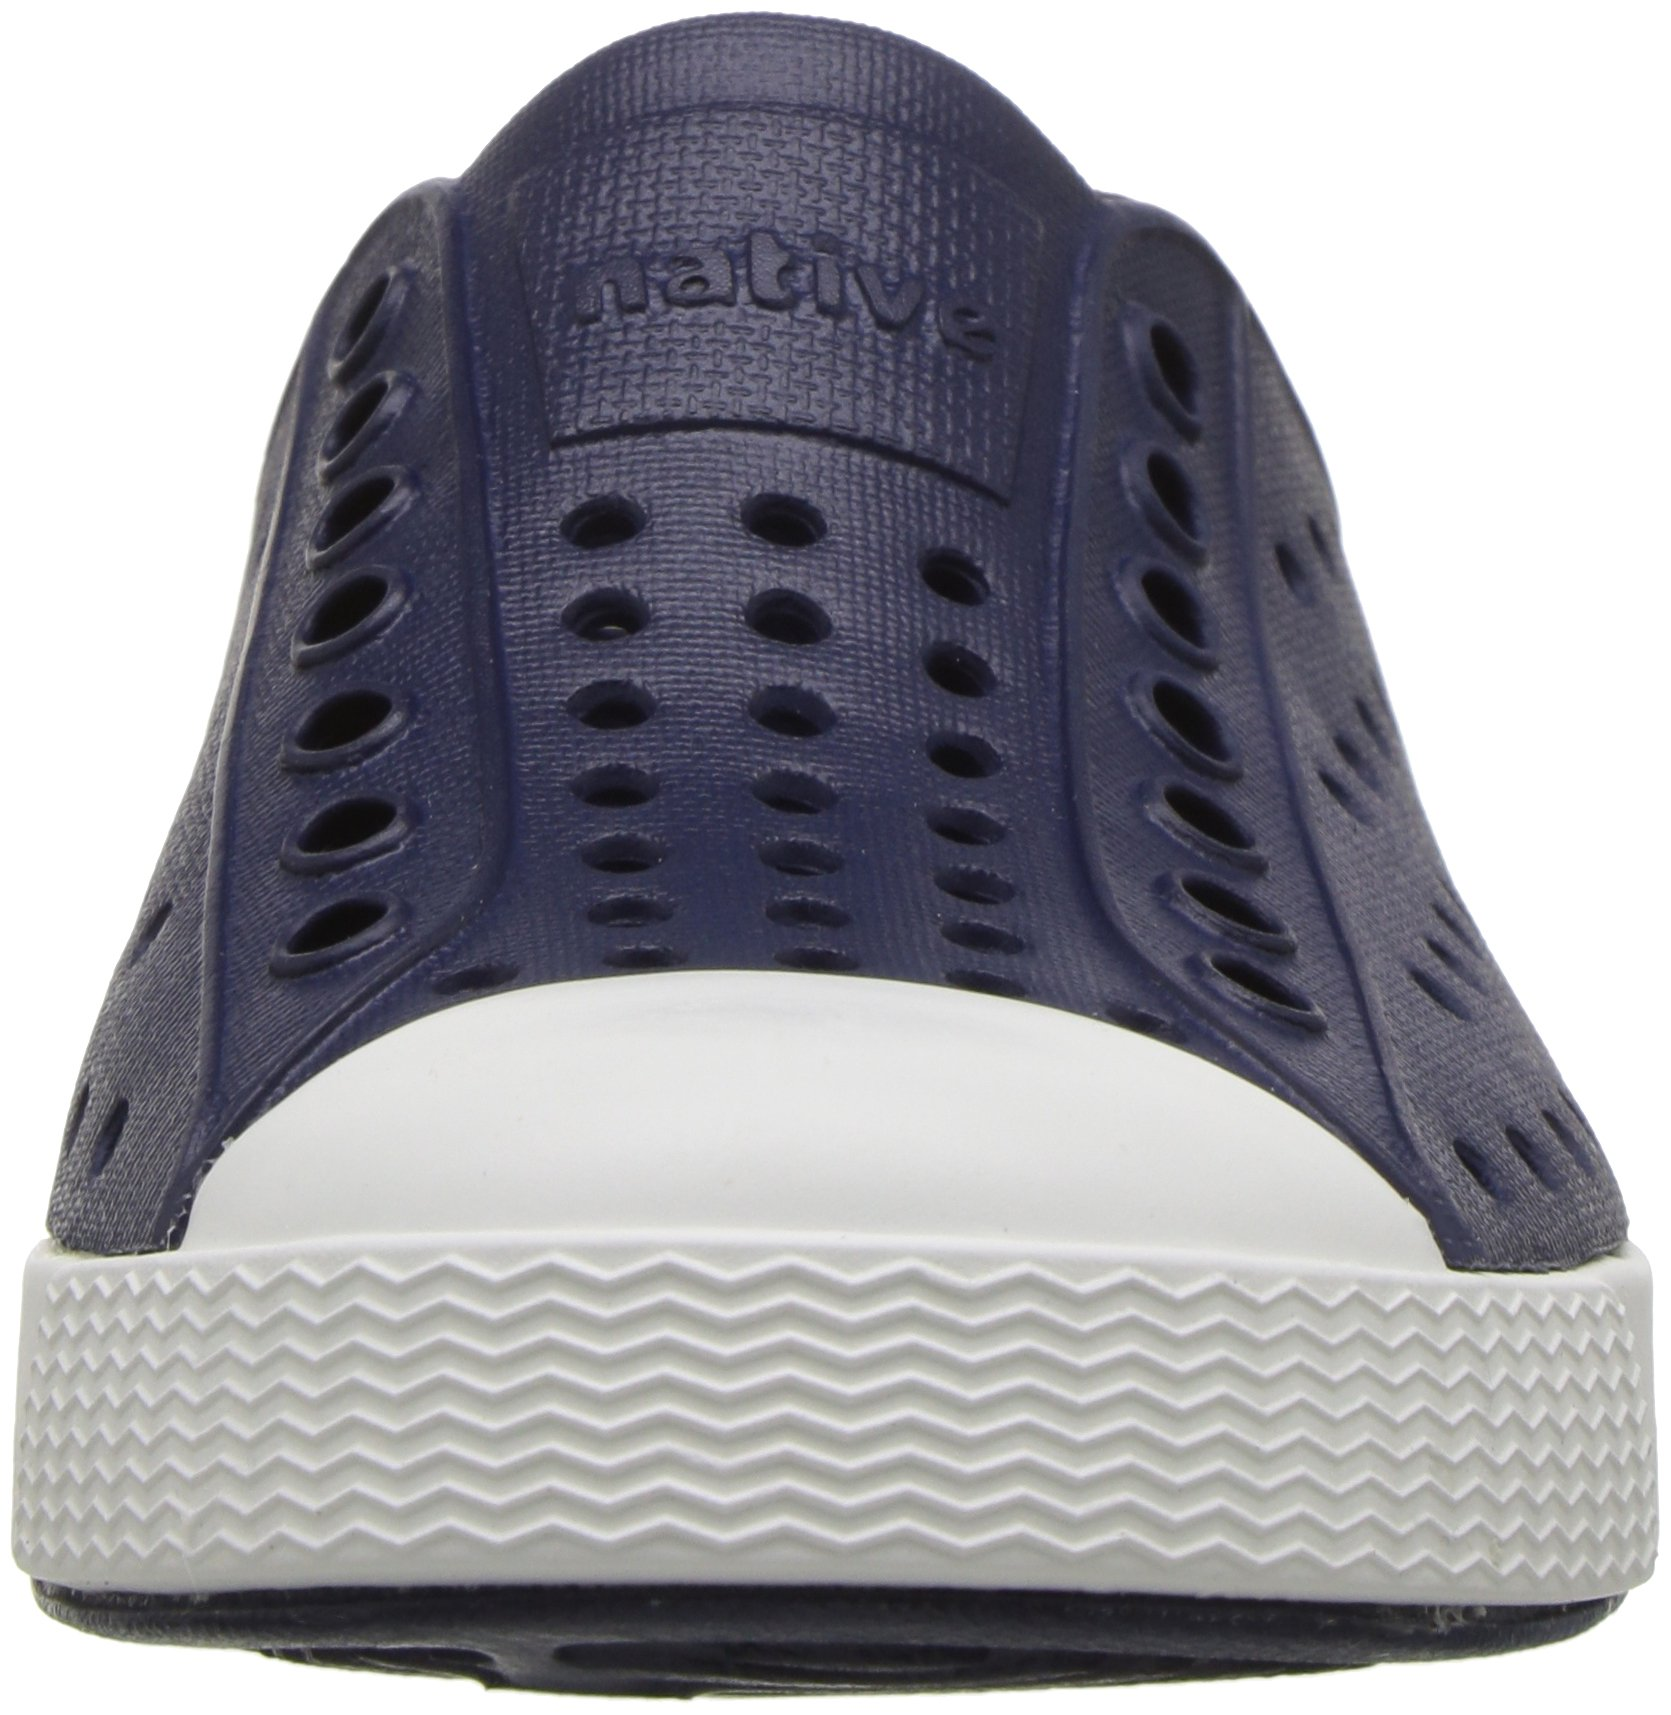 native Kids Jefferson Child Water Proof Shoes, Regatta Blue/Shell White, 6 Medium US Toddler by native (Image #4)